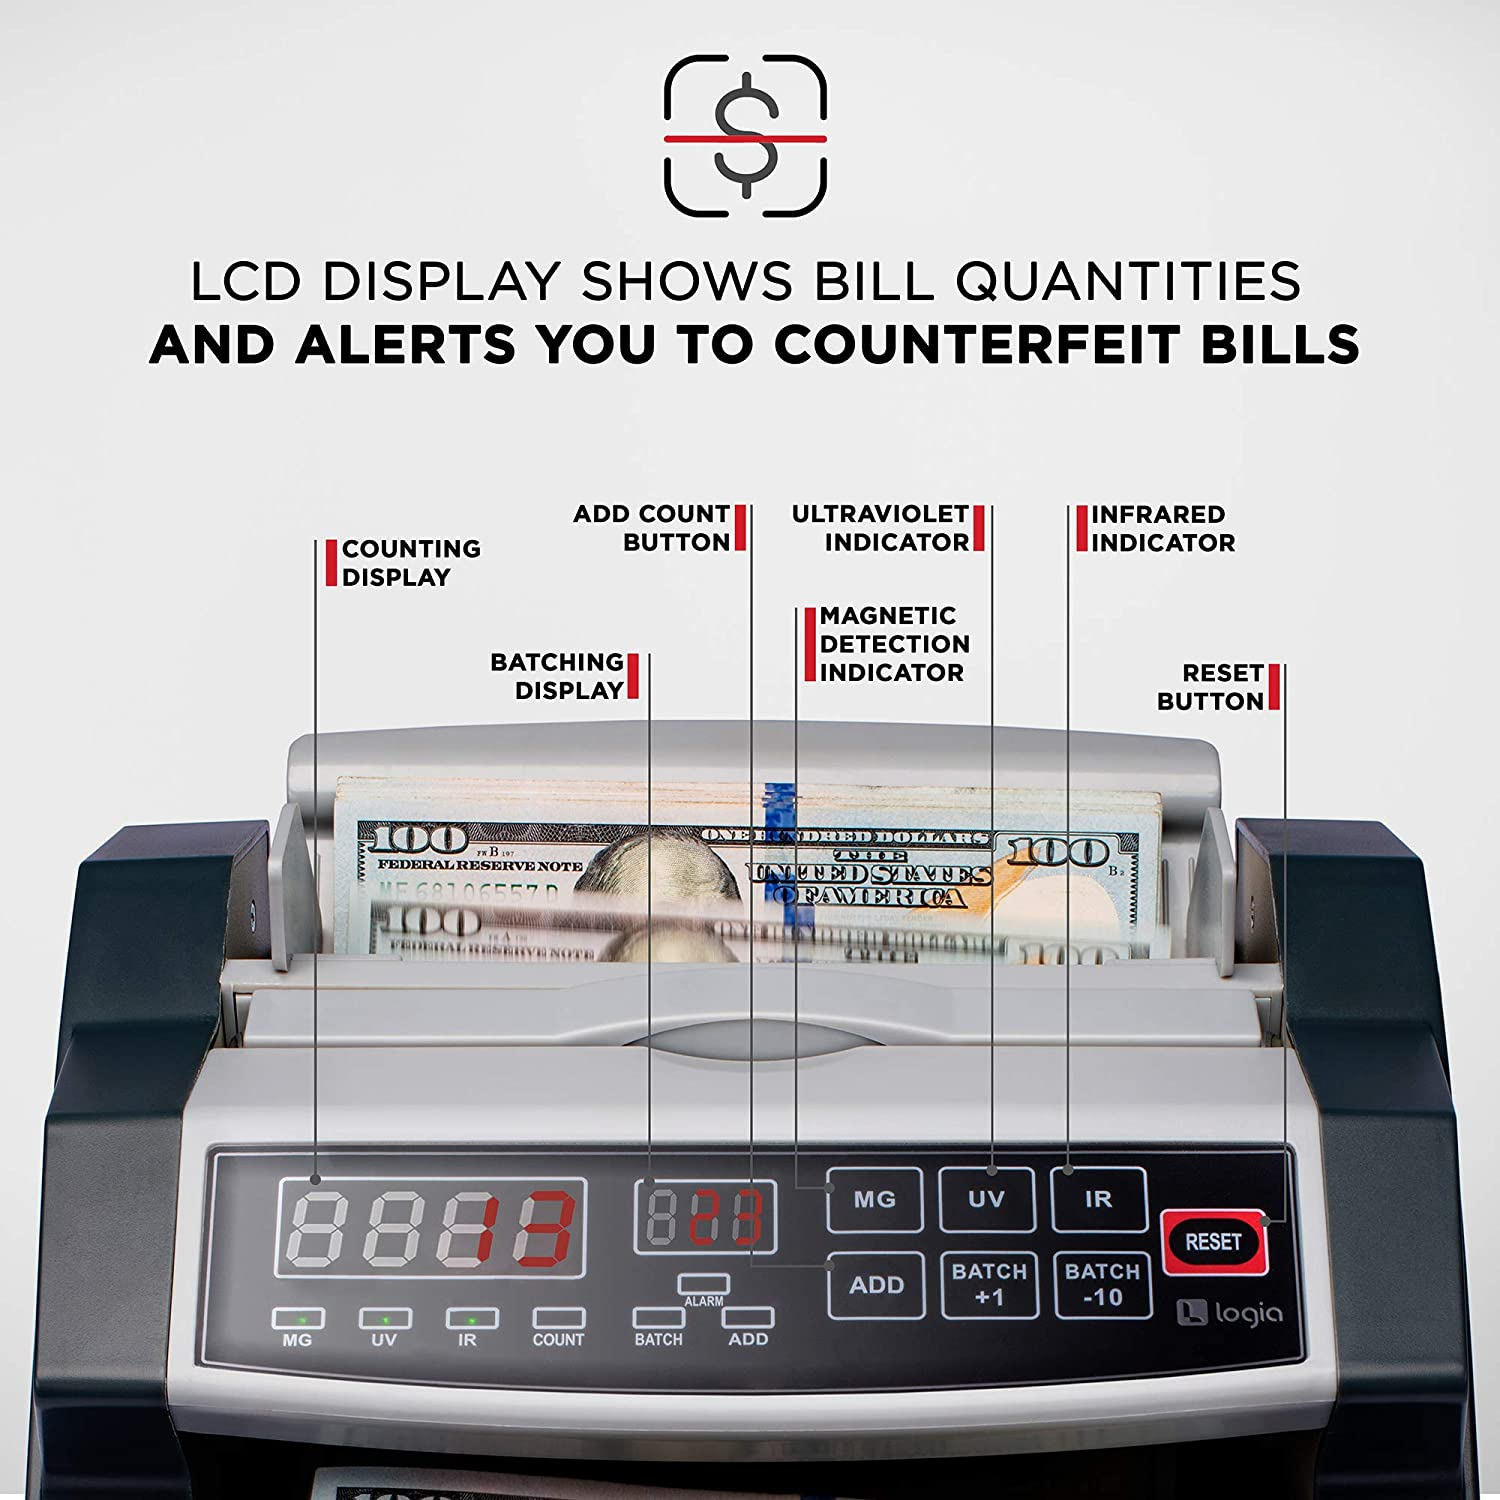 Logia Money Counter, Automatic Counting, Custom Batching, Adjustable Tray, LED Display, Counterfeit Detection, Self-Check, Customer-Facing Display and Handle : Office Products